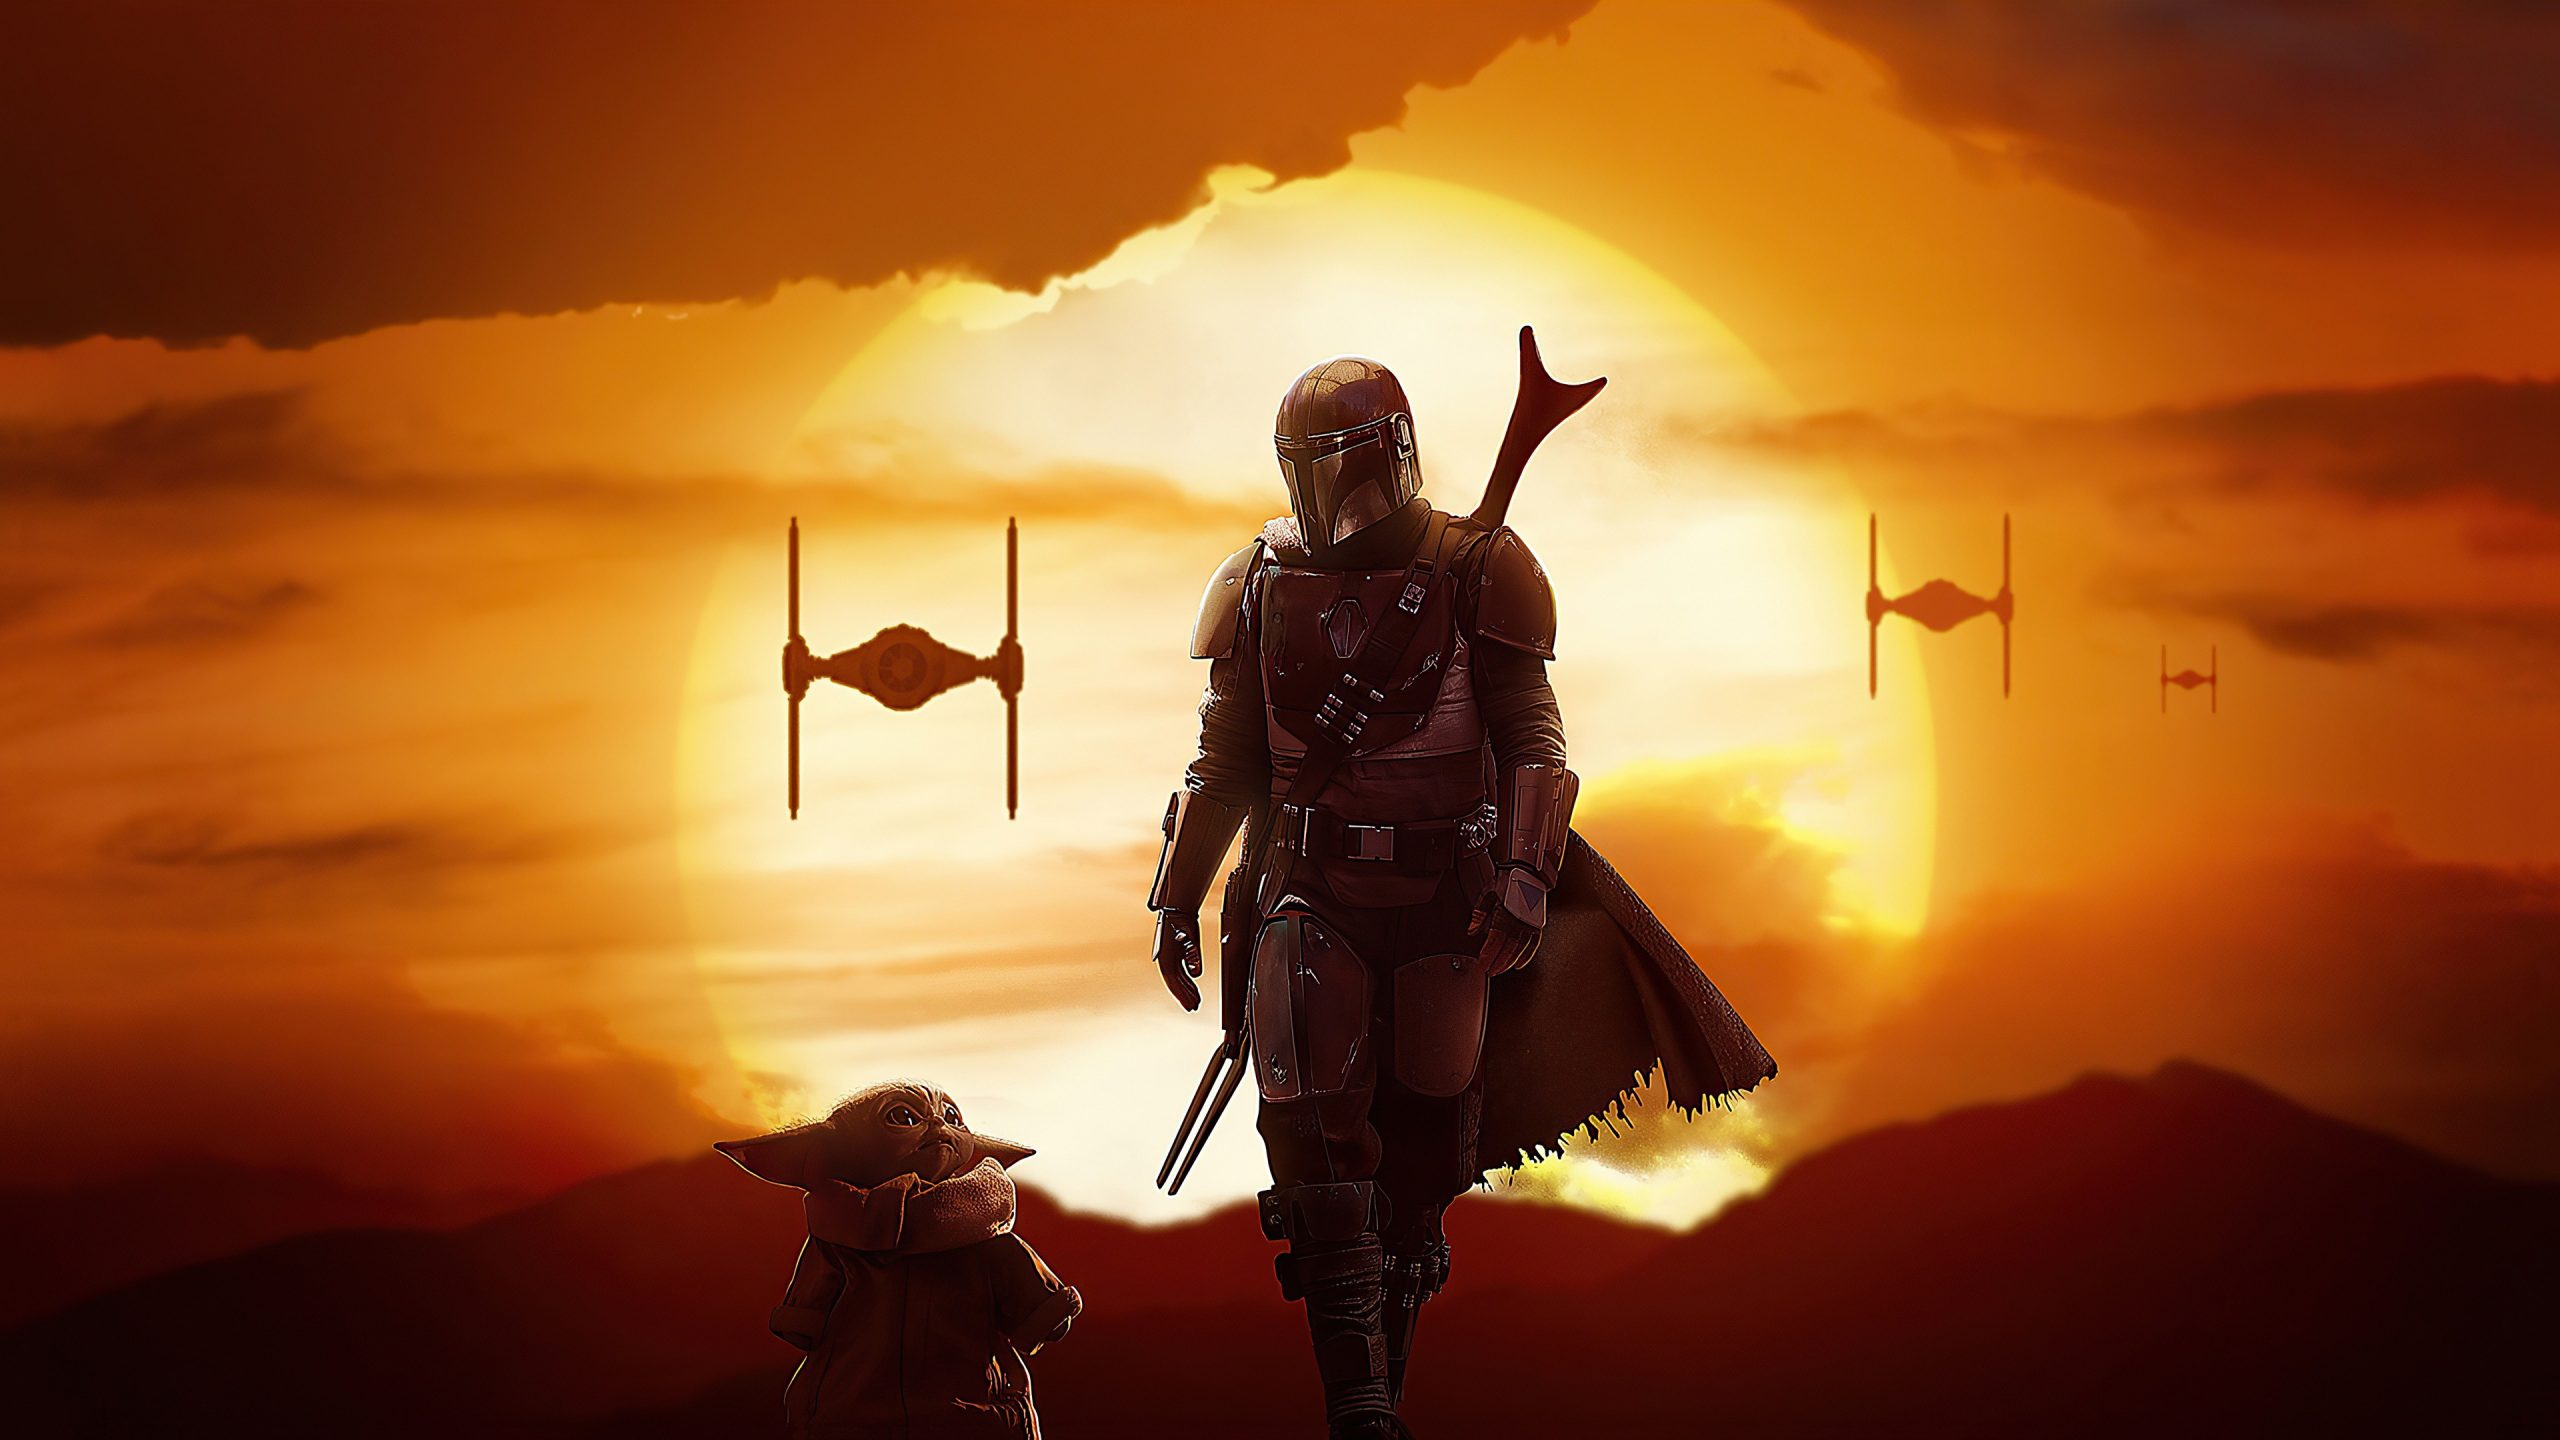 baby yoda star wars with background of sun and clouds 4k hd movies wallpapers